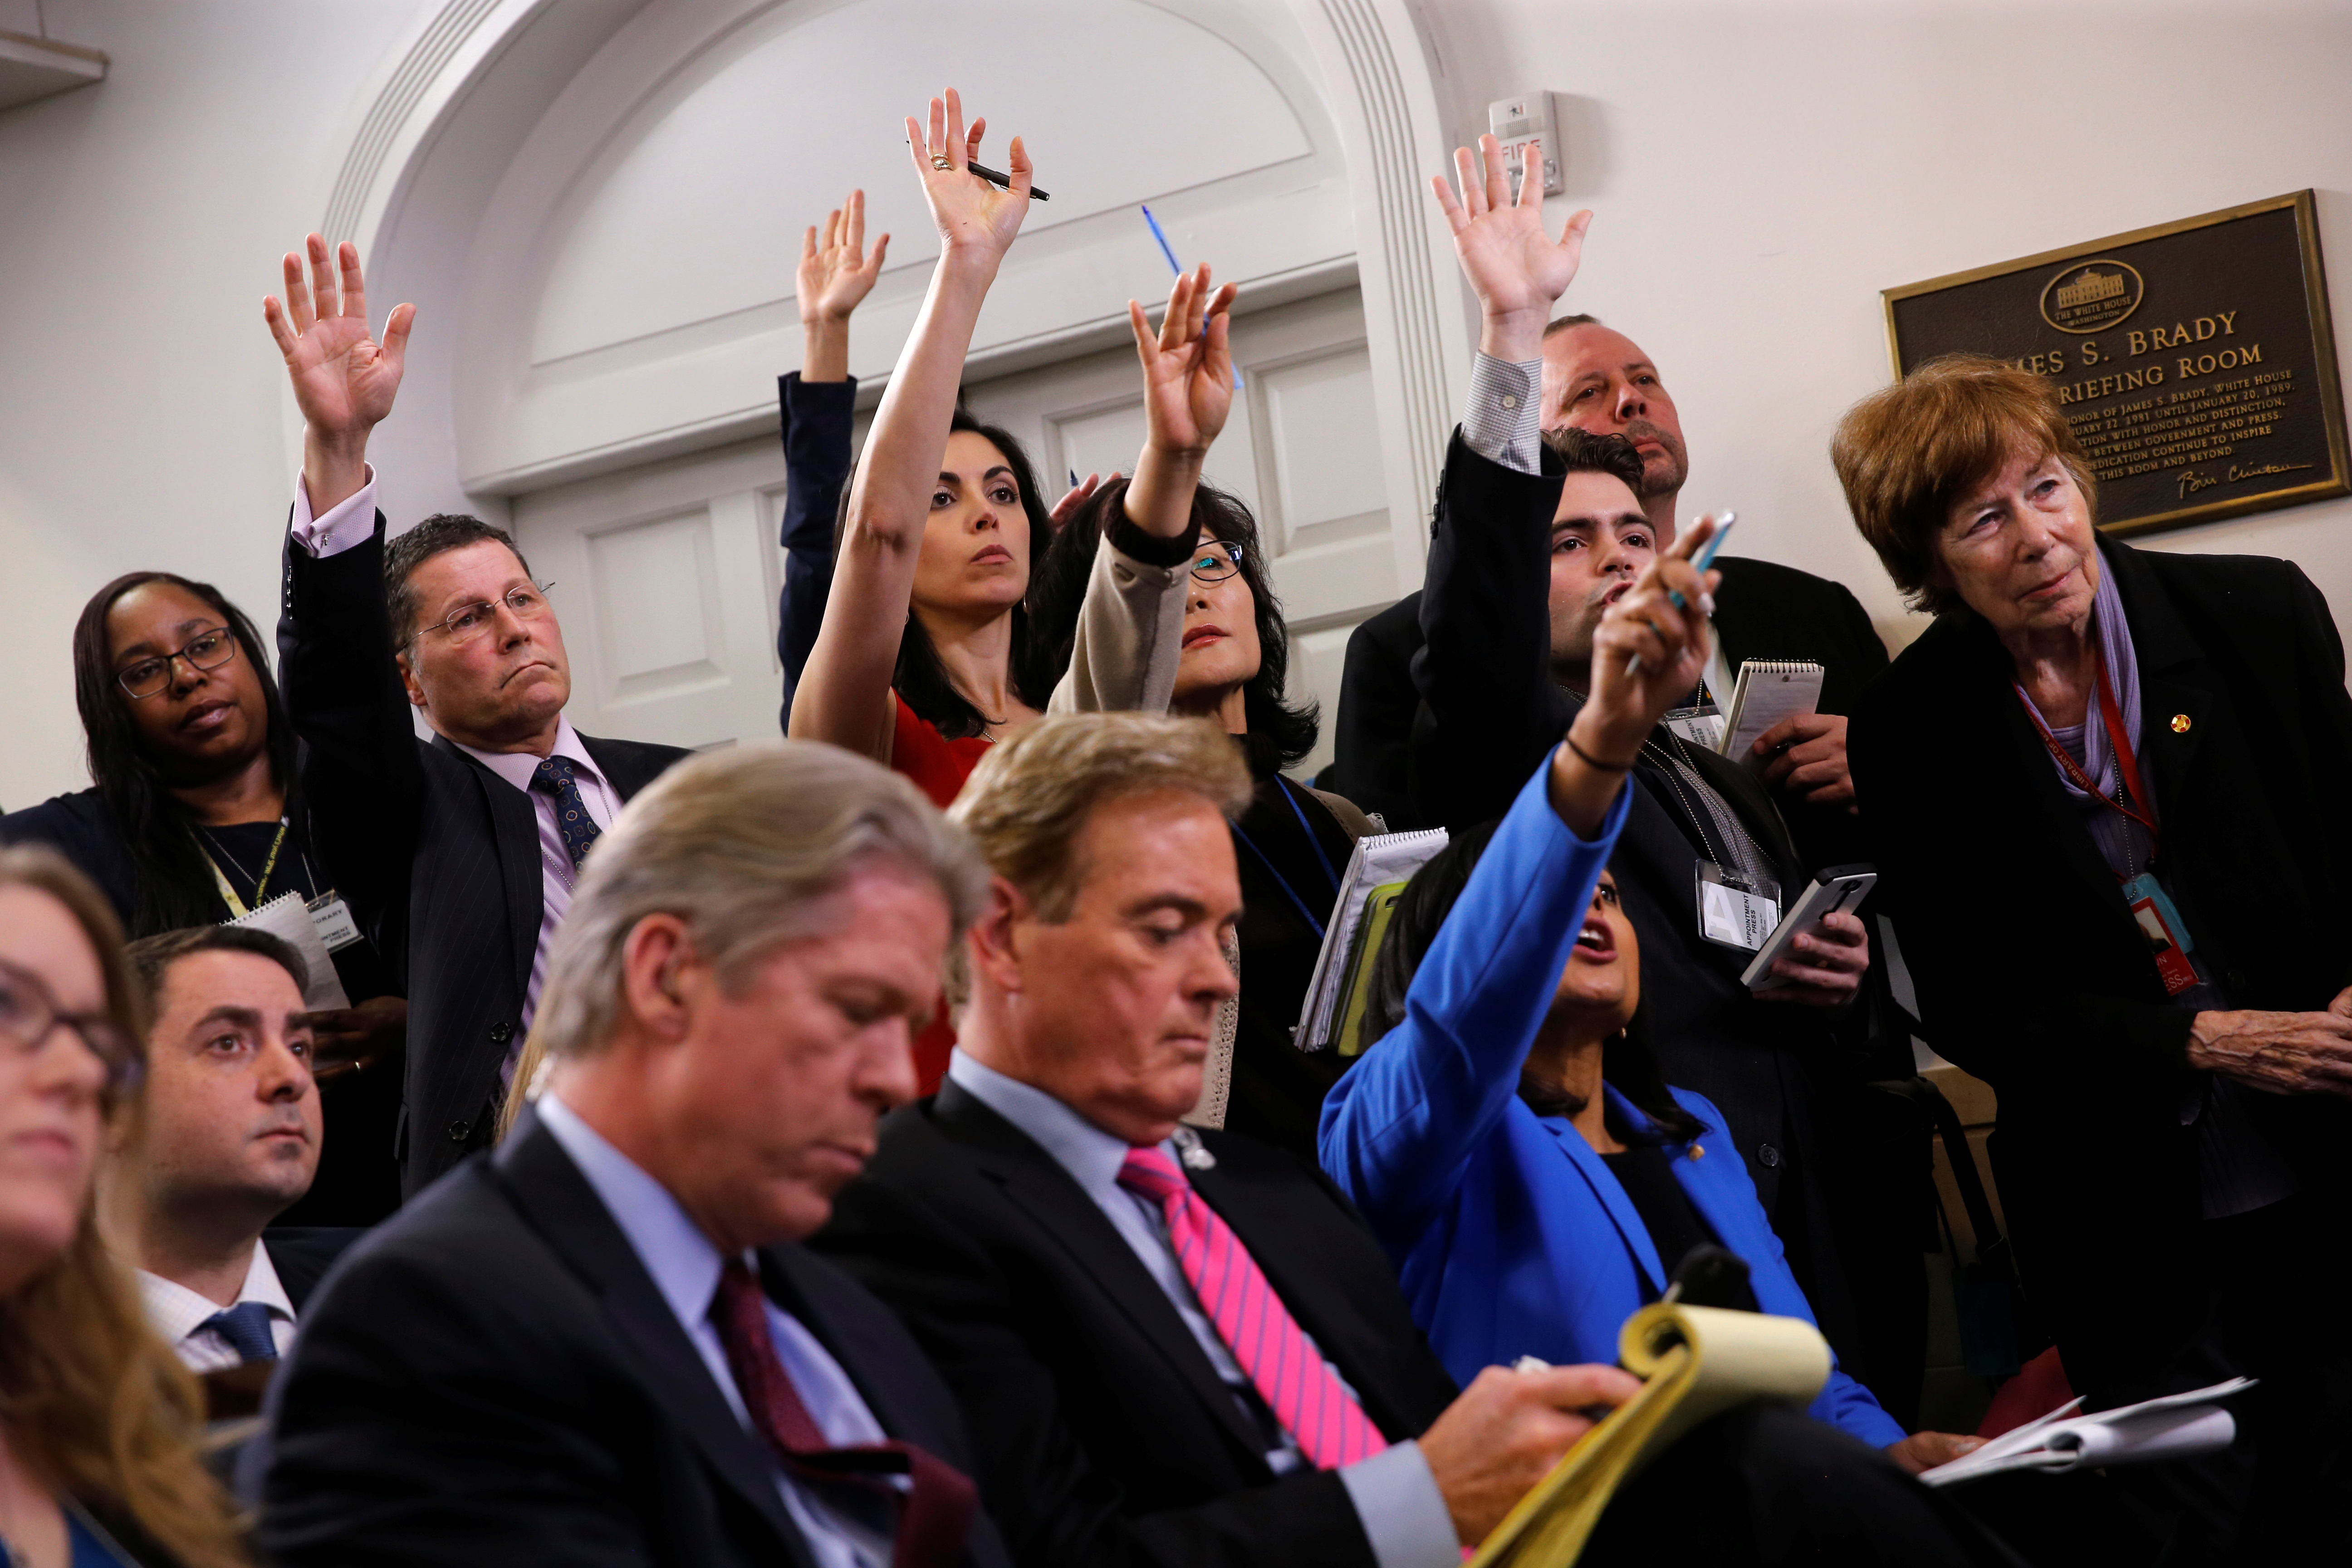 Reporters try to ask questions during White House Communications Director Sean Spicer's daily briefing at the White House in Washington, U.S., February 27, 2017. REUTERS/Jonathan Ernst - RC1593D78DC0